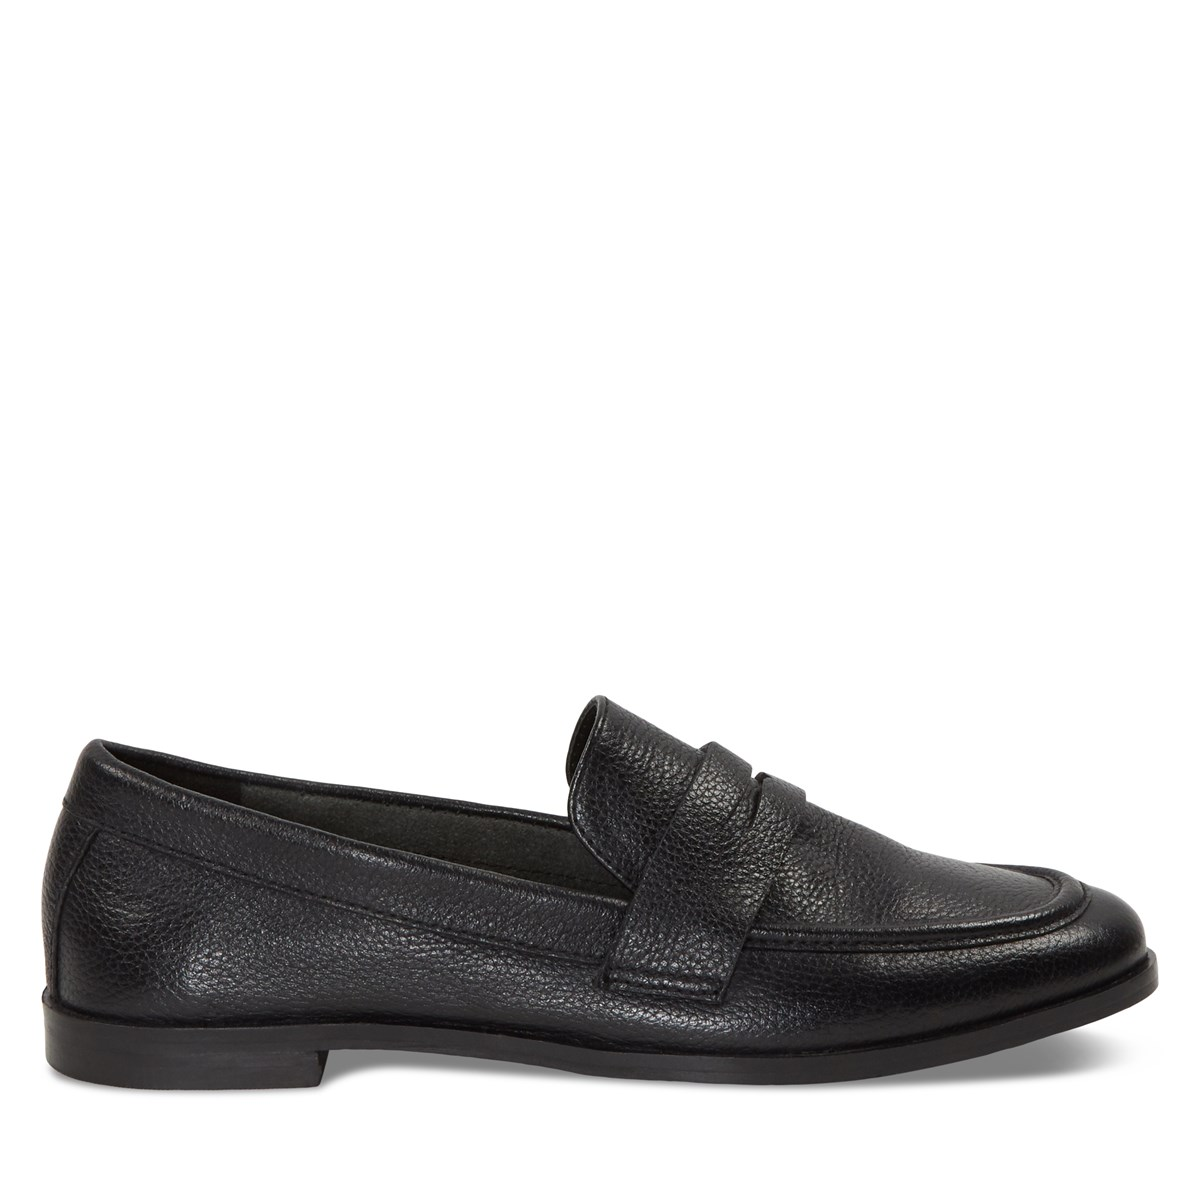 Women's Mia Loafers in Black